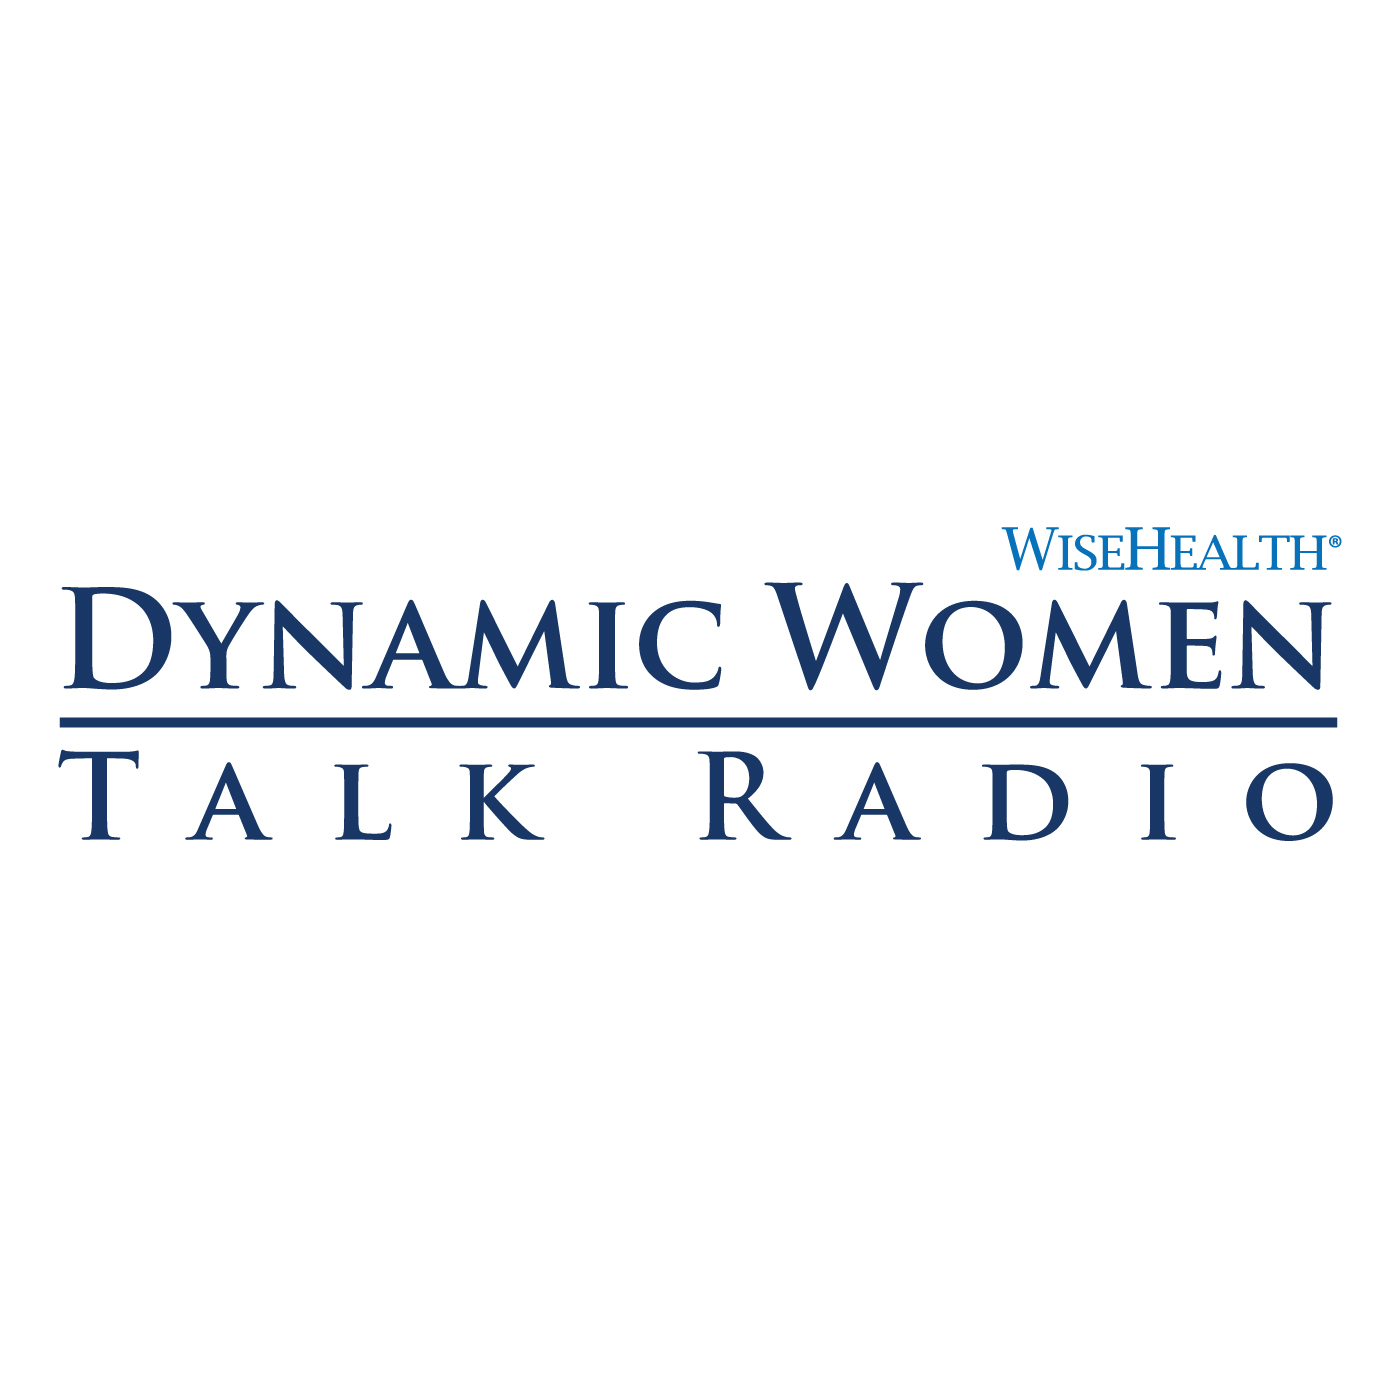 Dynamic Women Talk Radio